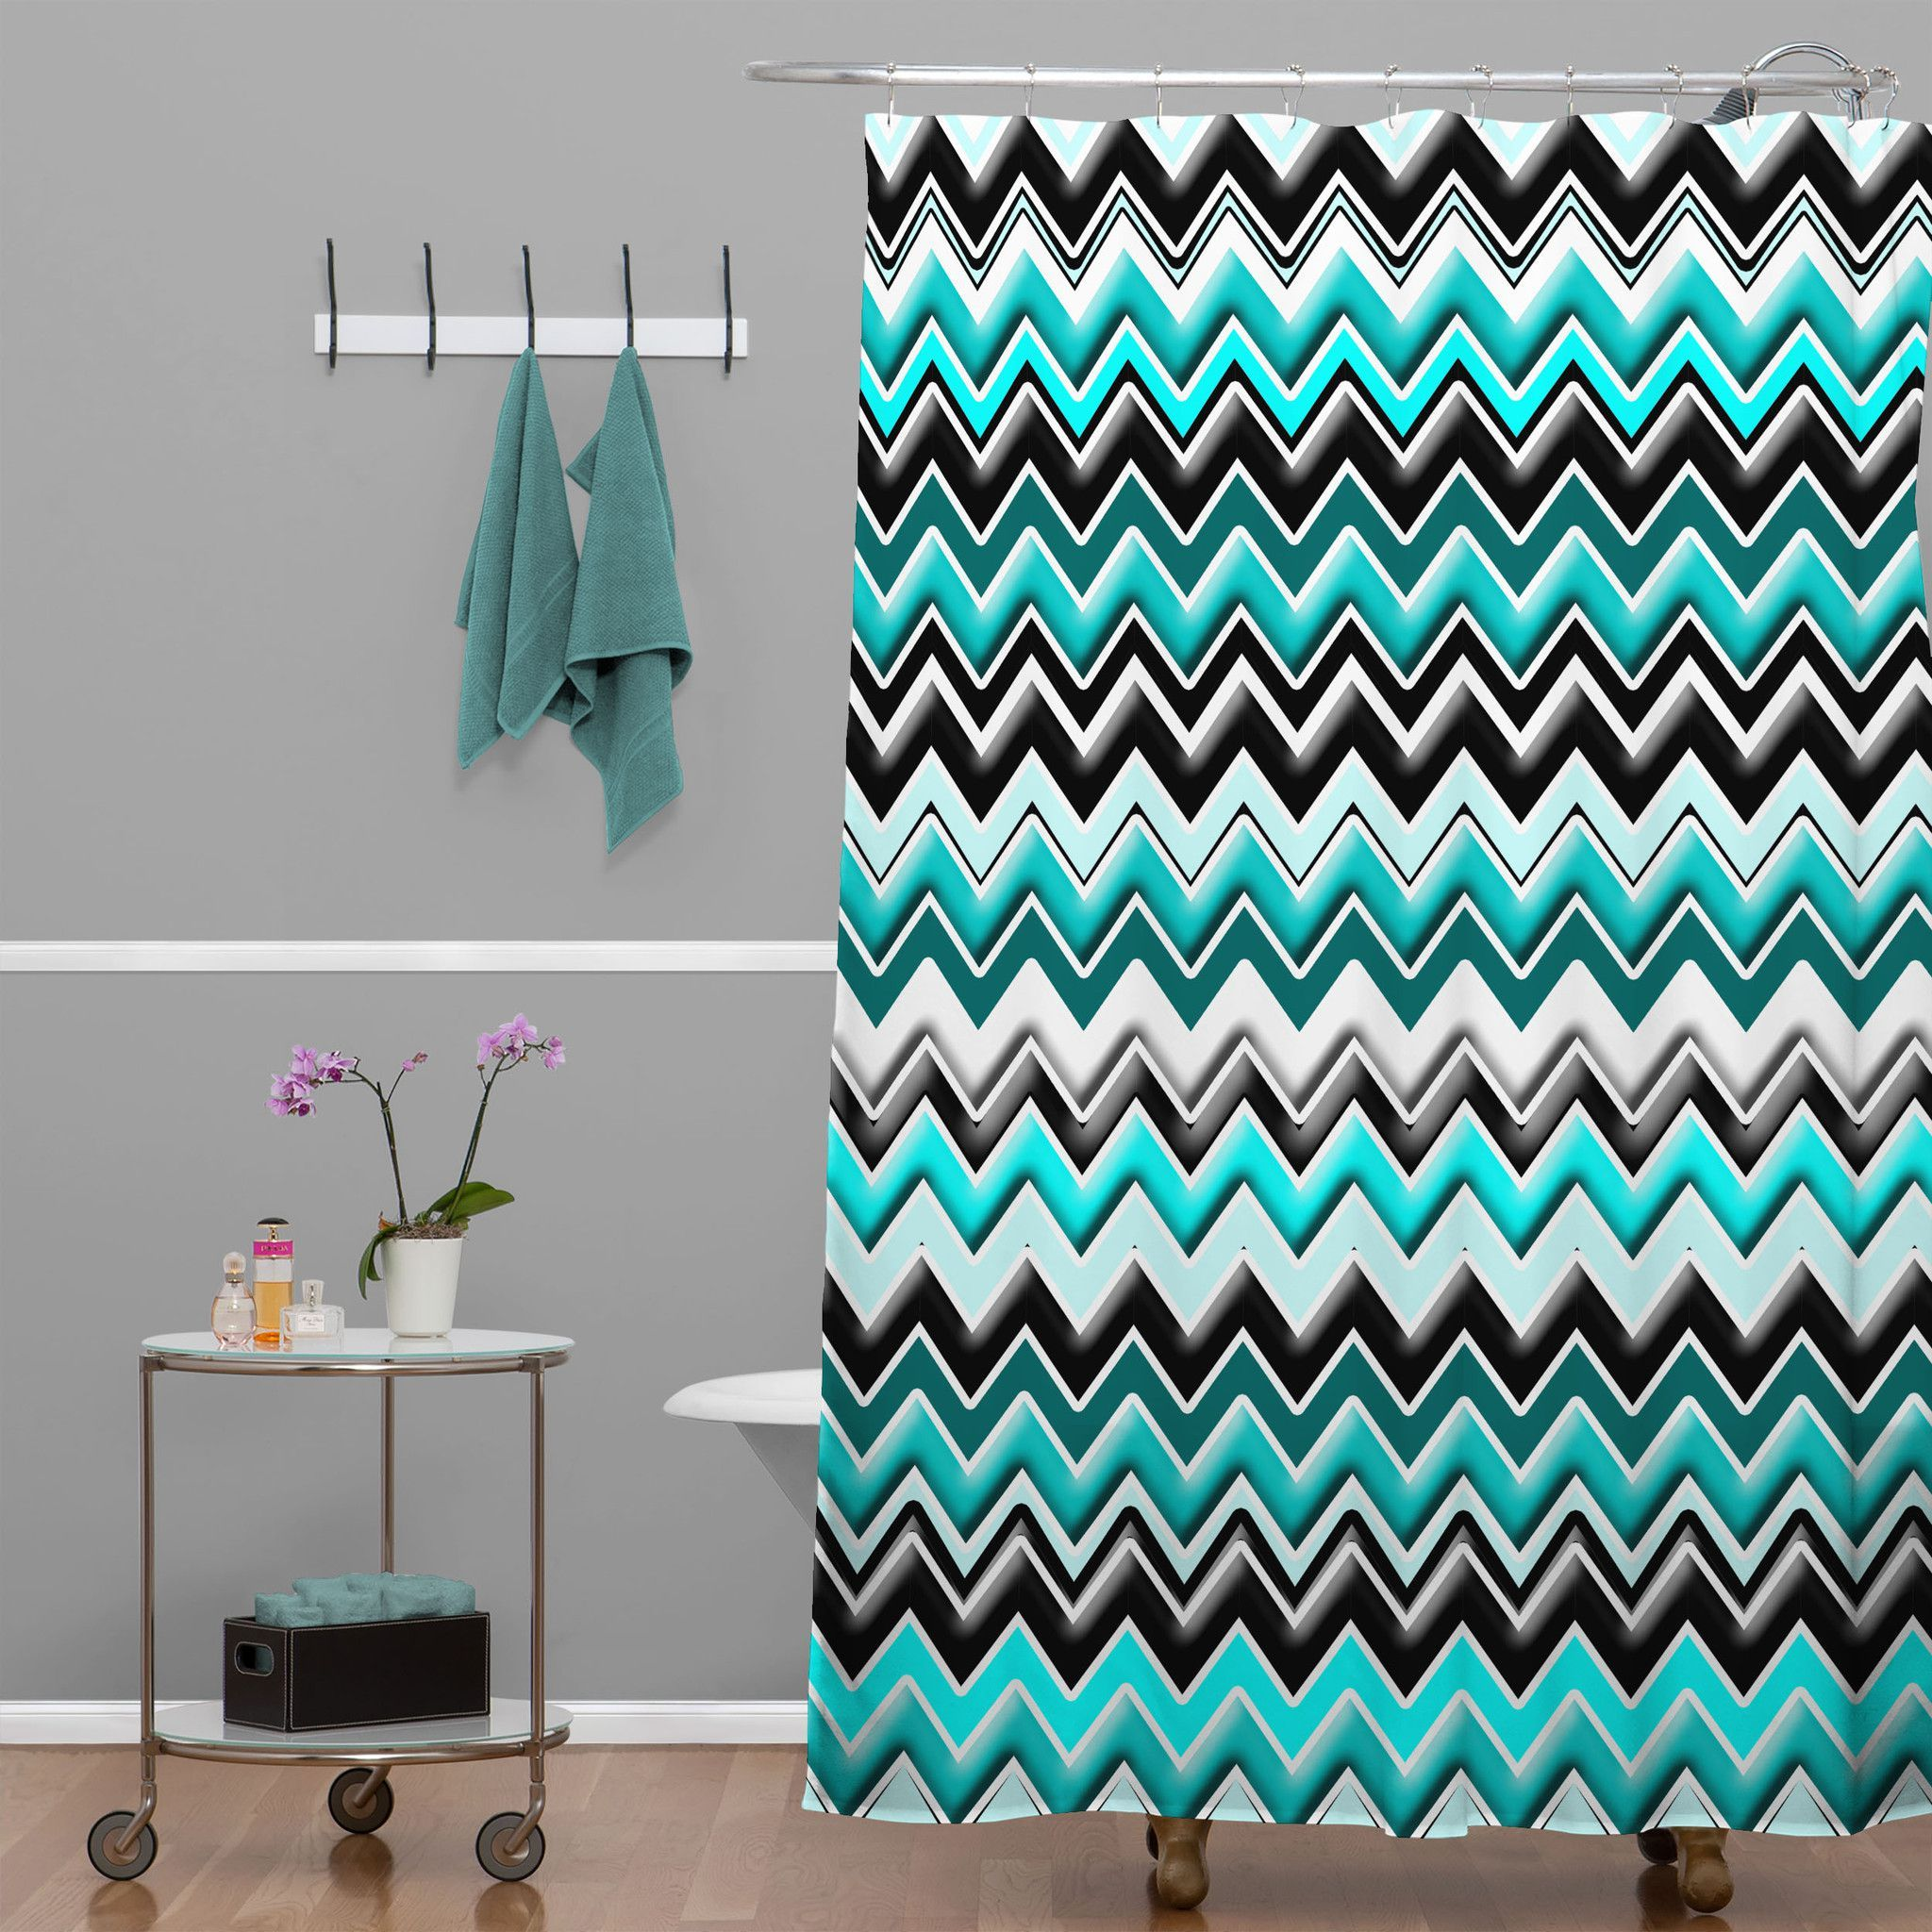 Turquoise Black And White Chevron Shower Curtain Teal Curtains Bathroom